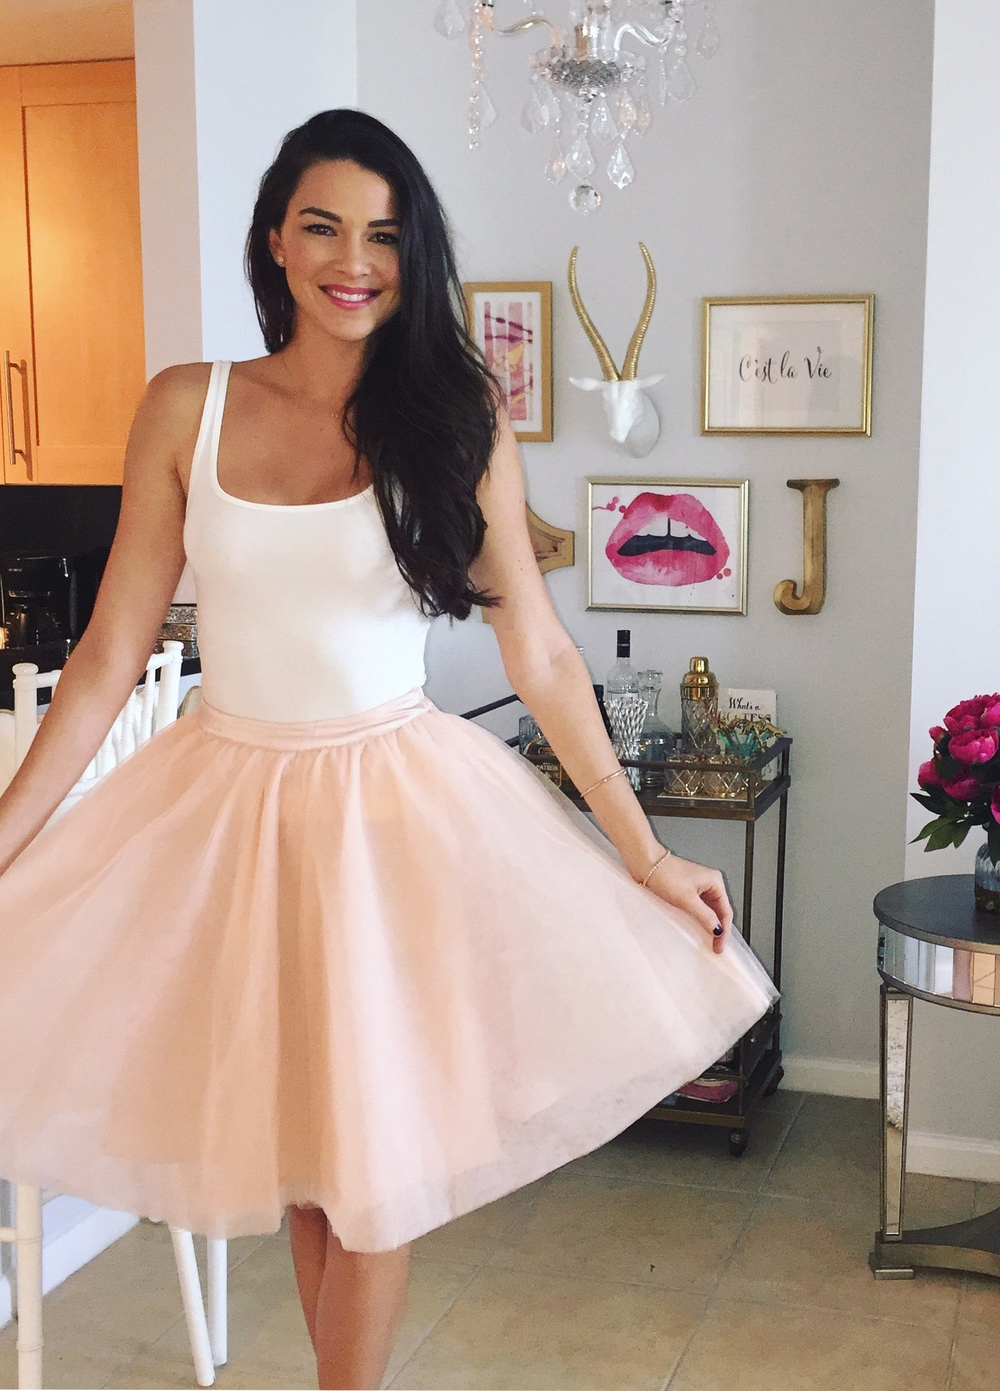 pink tulle tutu skirt birthday girls lunch bridal shower hey any opportunity to wear a tutu you need to take advantage